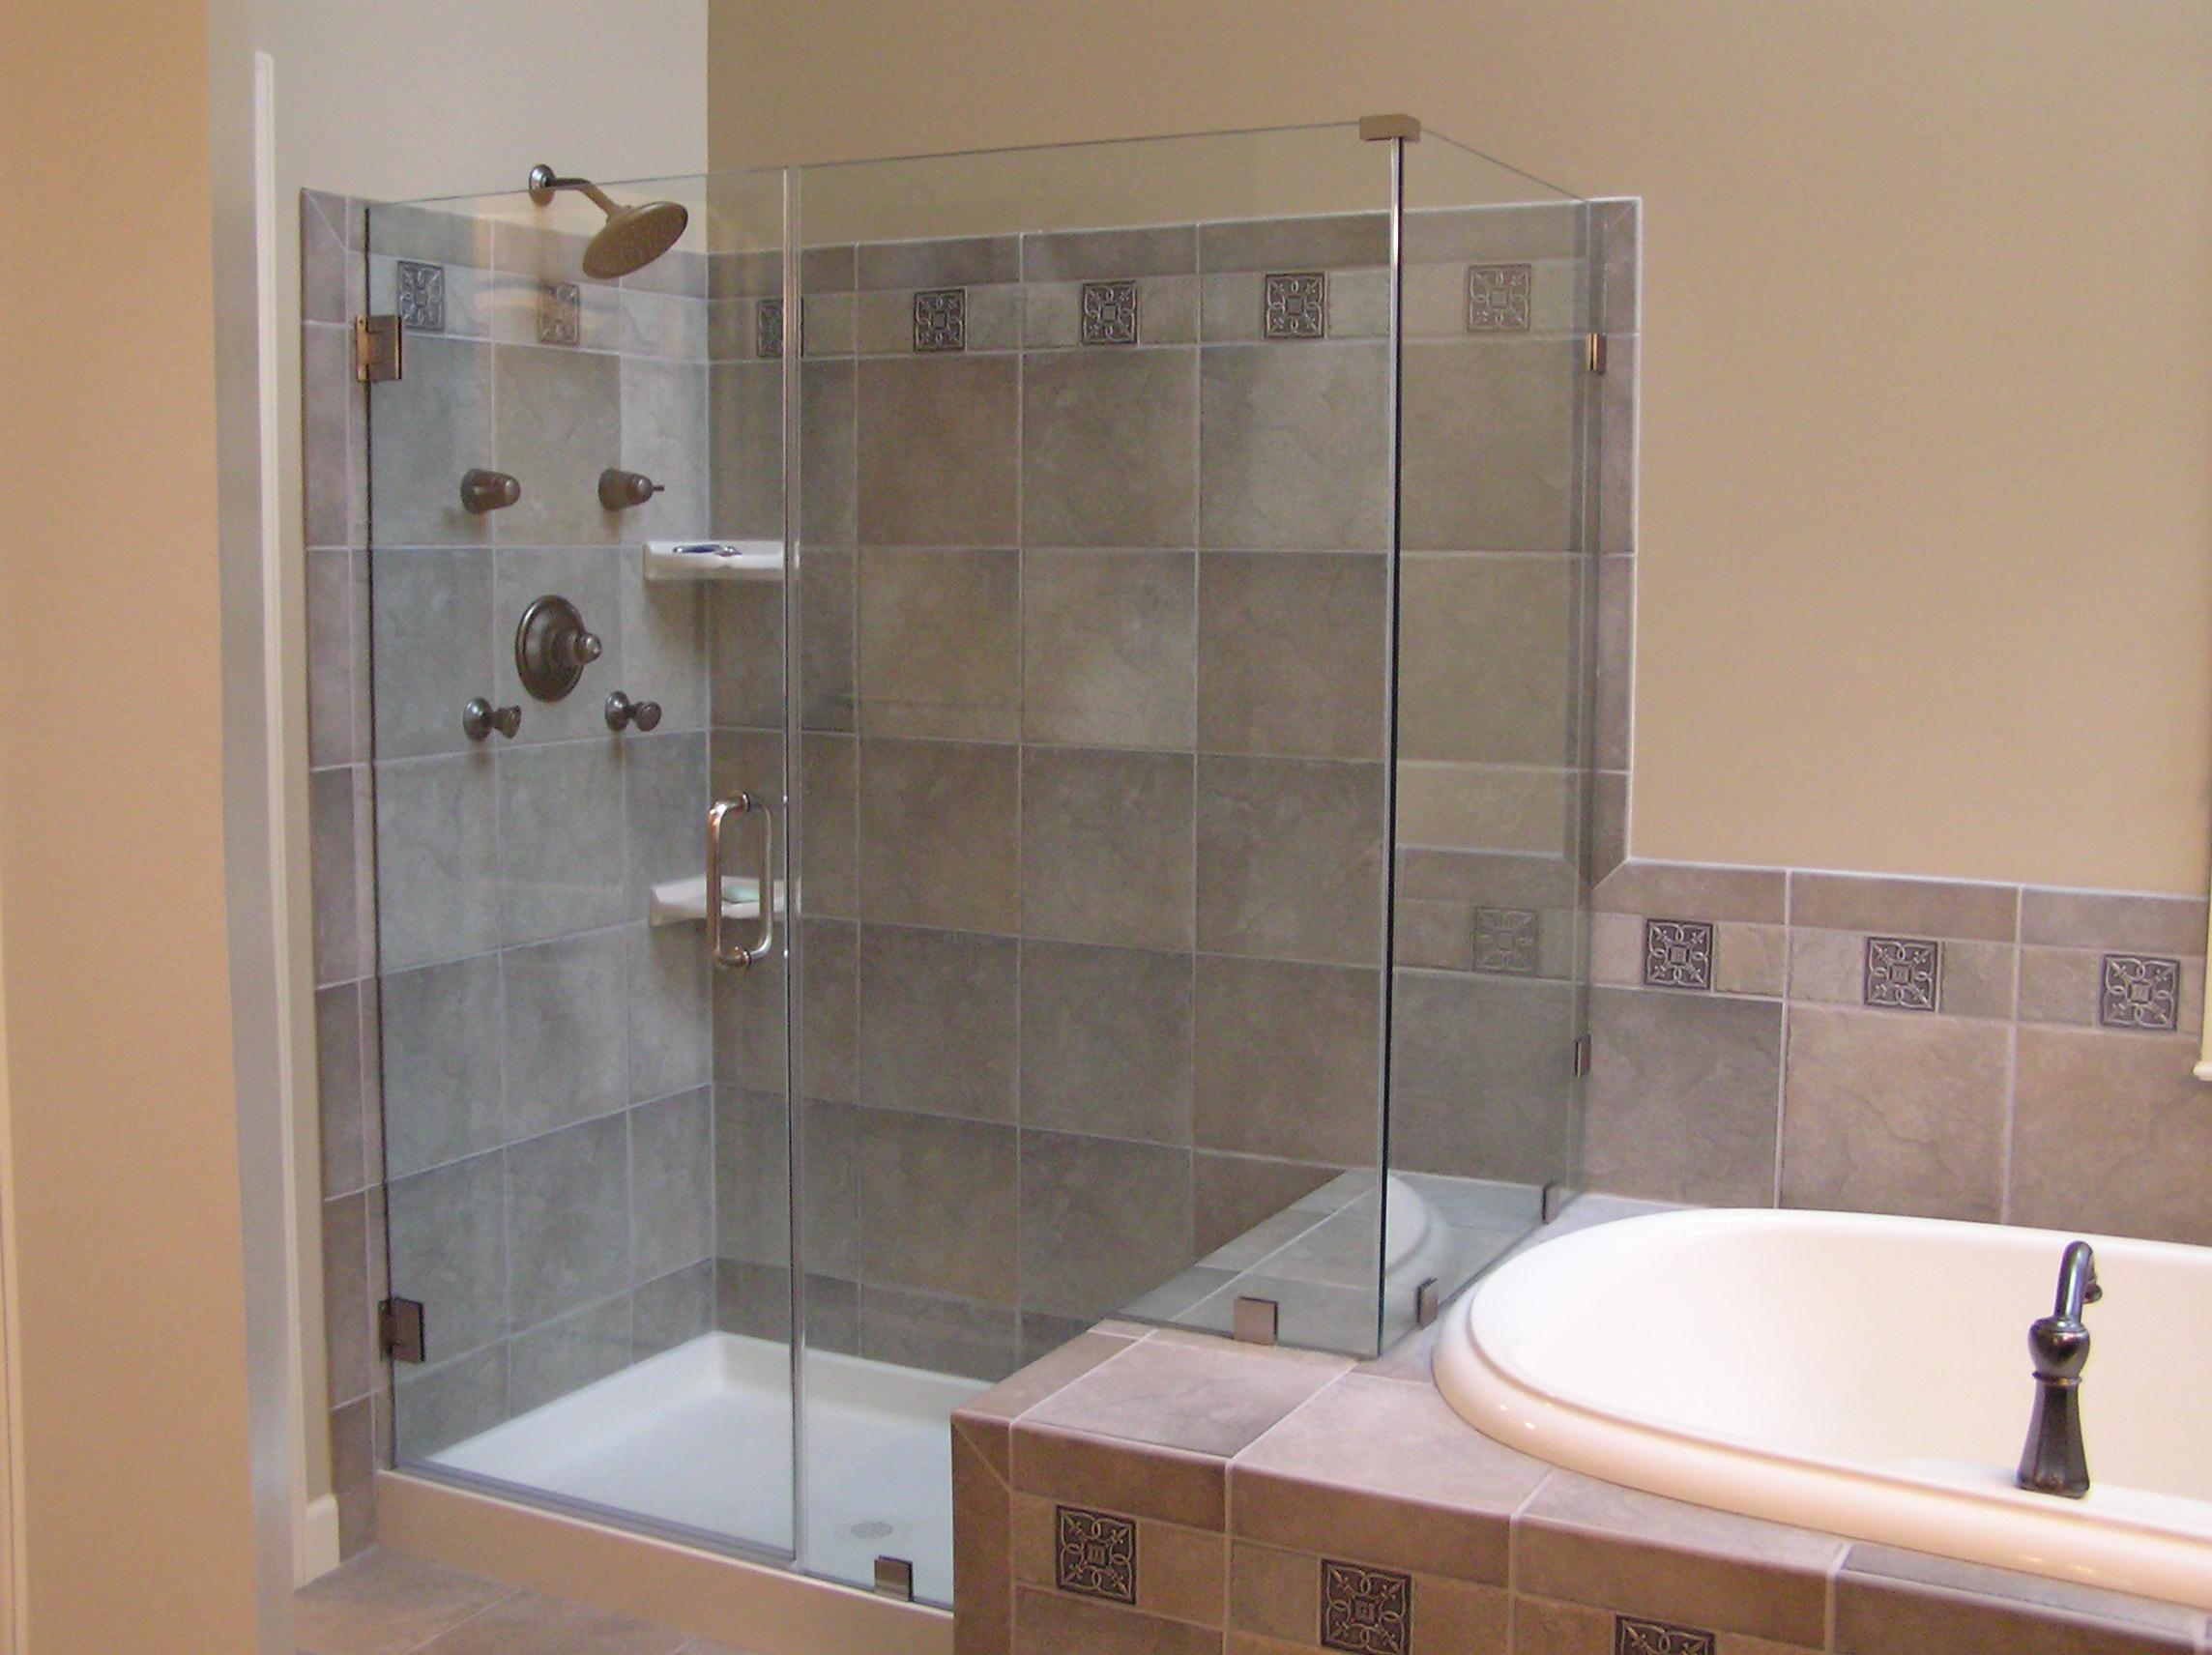 Bathroom Remodel Delaware Home Improvement Contractors - How to remodel a bathroom for small bathroom ideas